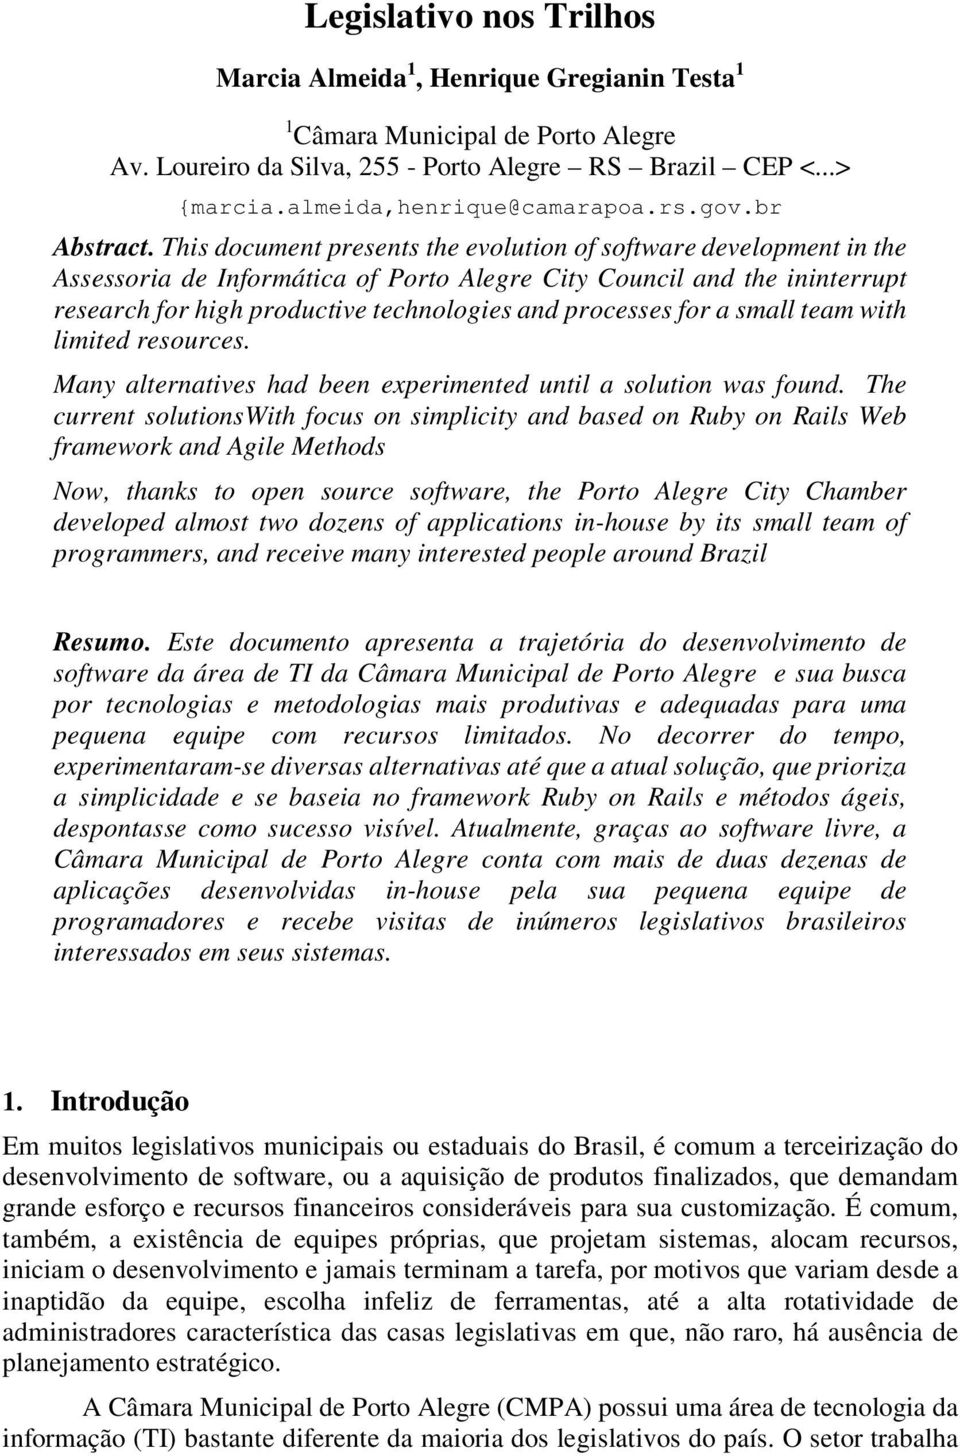 This document presents the evolution of software development in the Assessoria de Informática of Porto Alegre City Council and the ininterrupt research for high productive technologies and processes